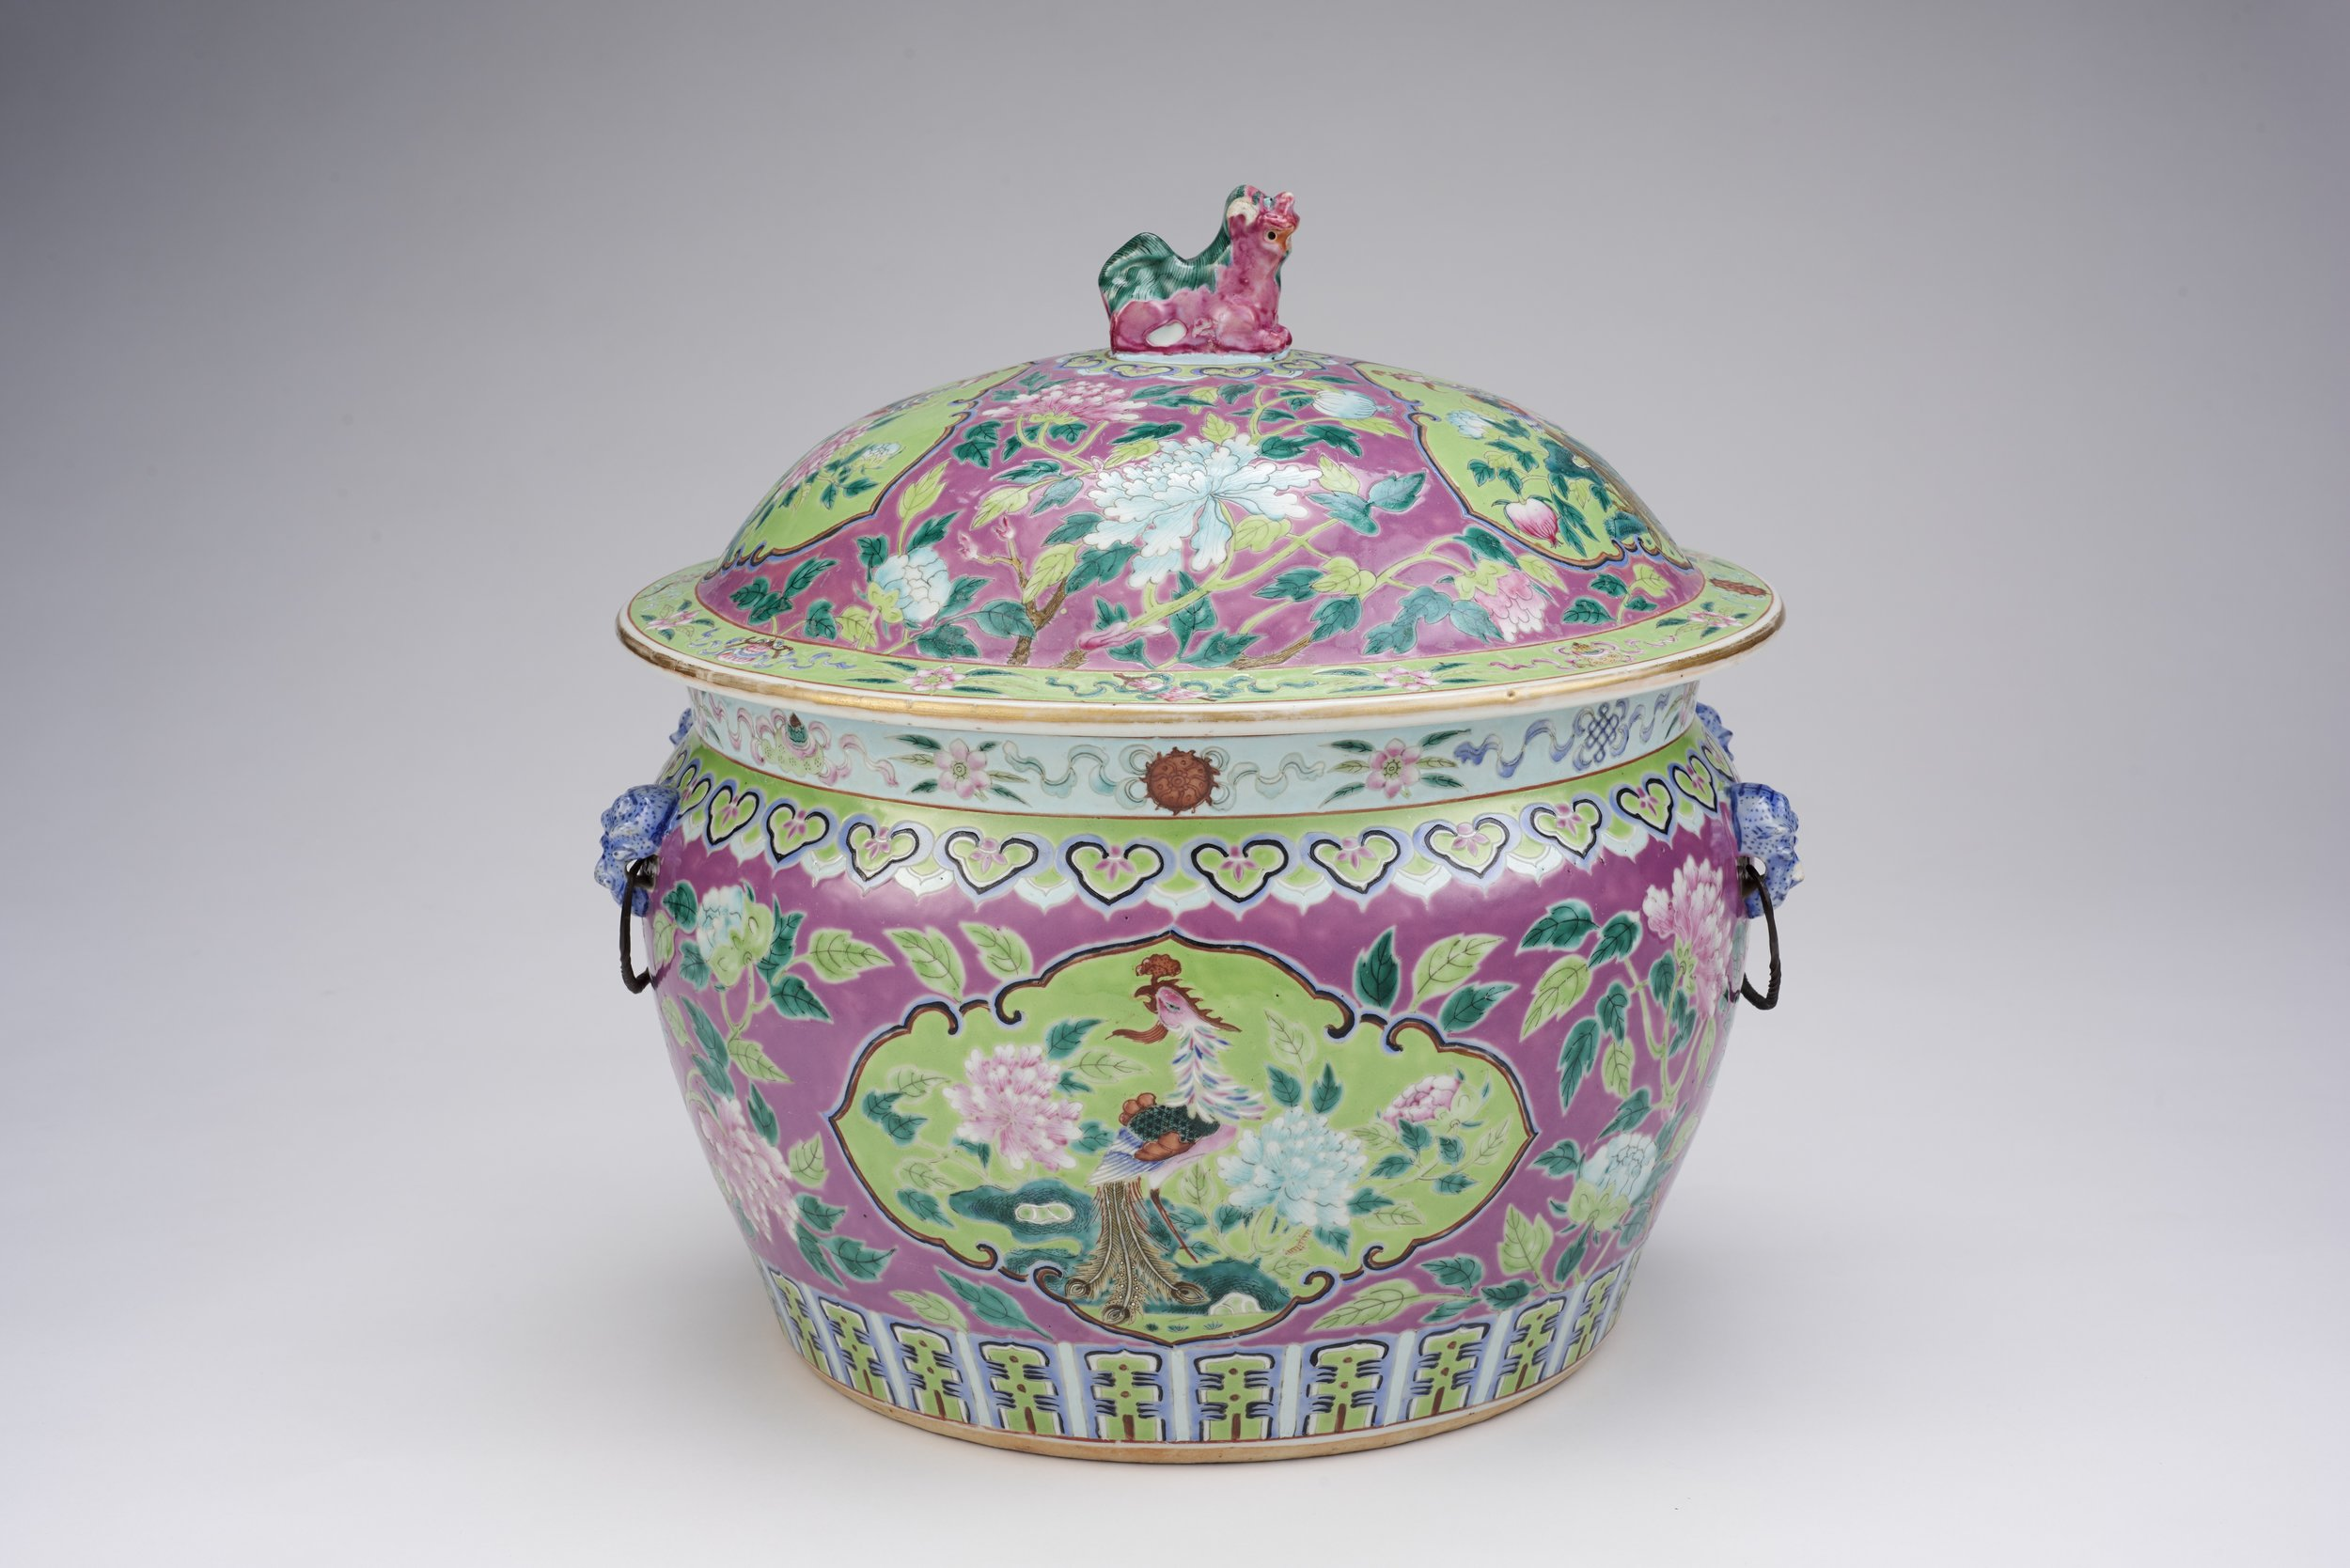 Kamcheng.  Guangxu period (1875-1908), Qing dynasty Ceramic, H: 22.0 x D: 30.4 Asian Civilisations Museum; Gift of Mrs Khoo Soo Beow in memory of her husband. Image courtesy of the Asian Civilisations Museum.